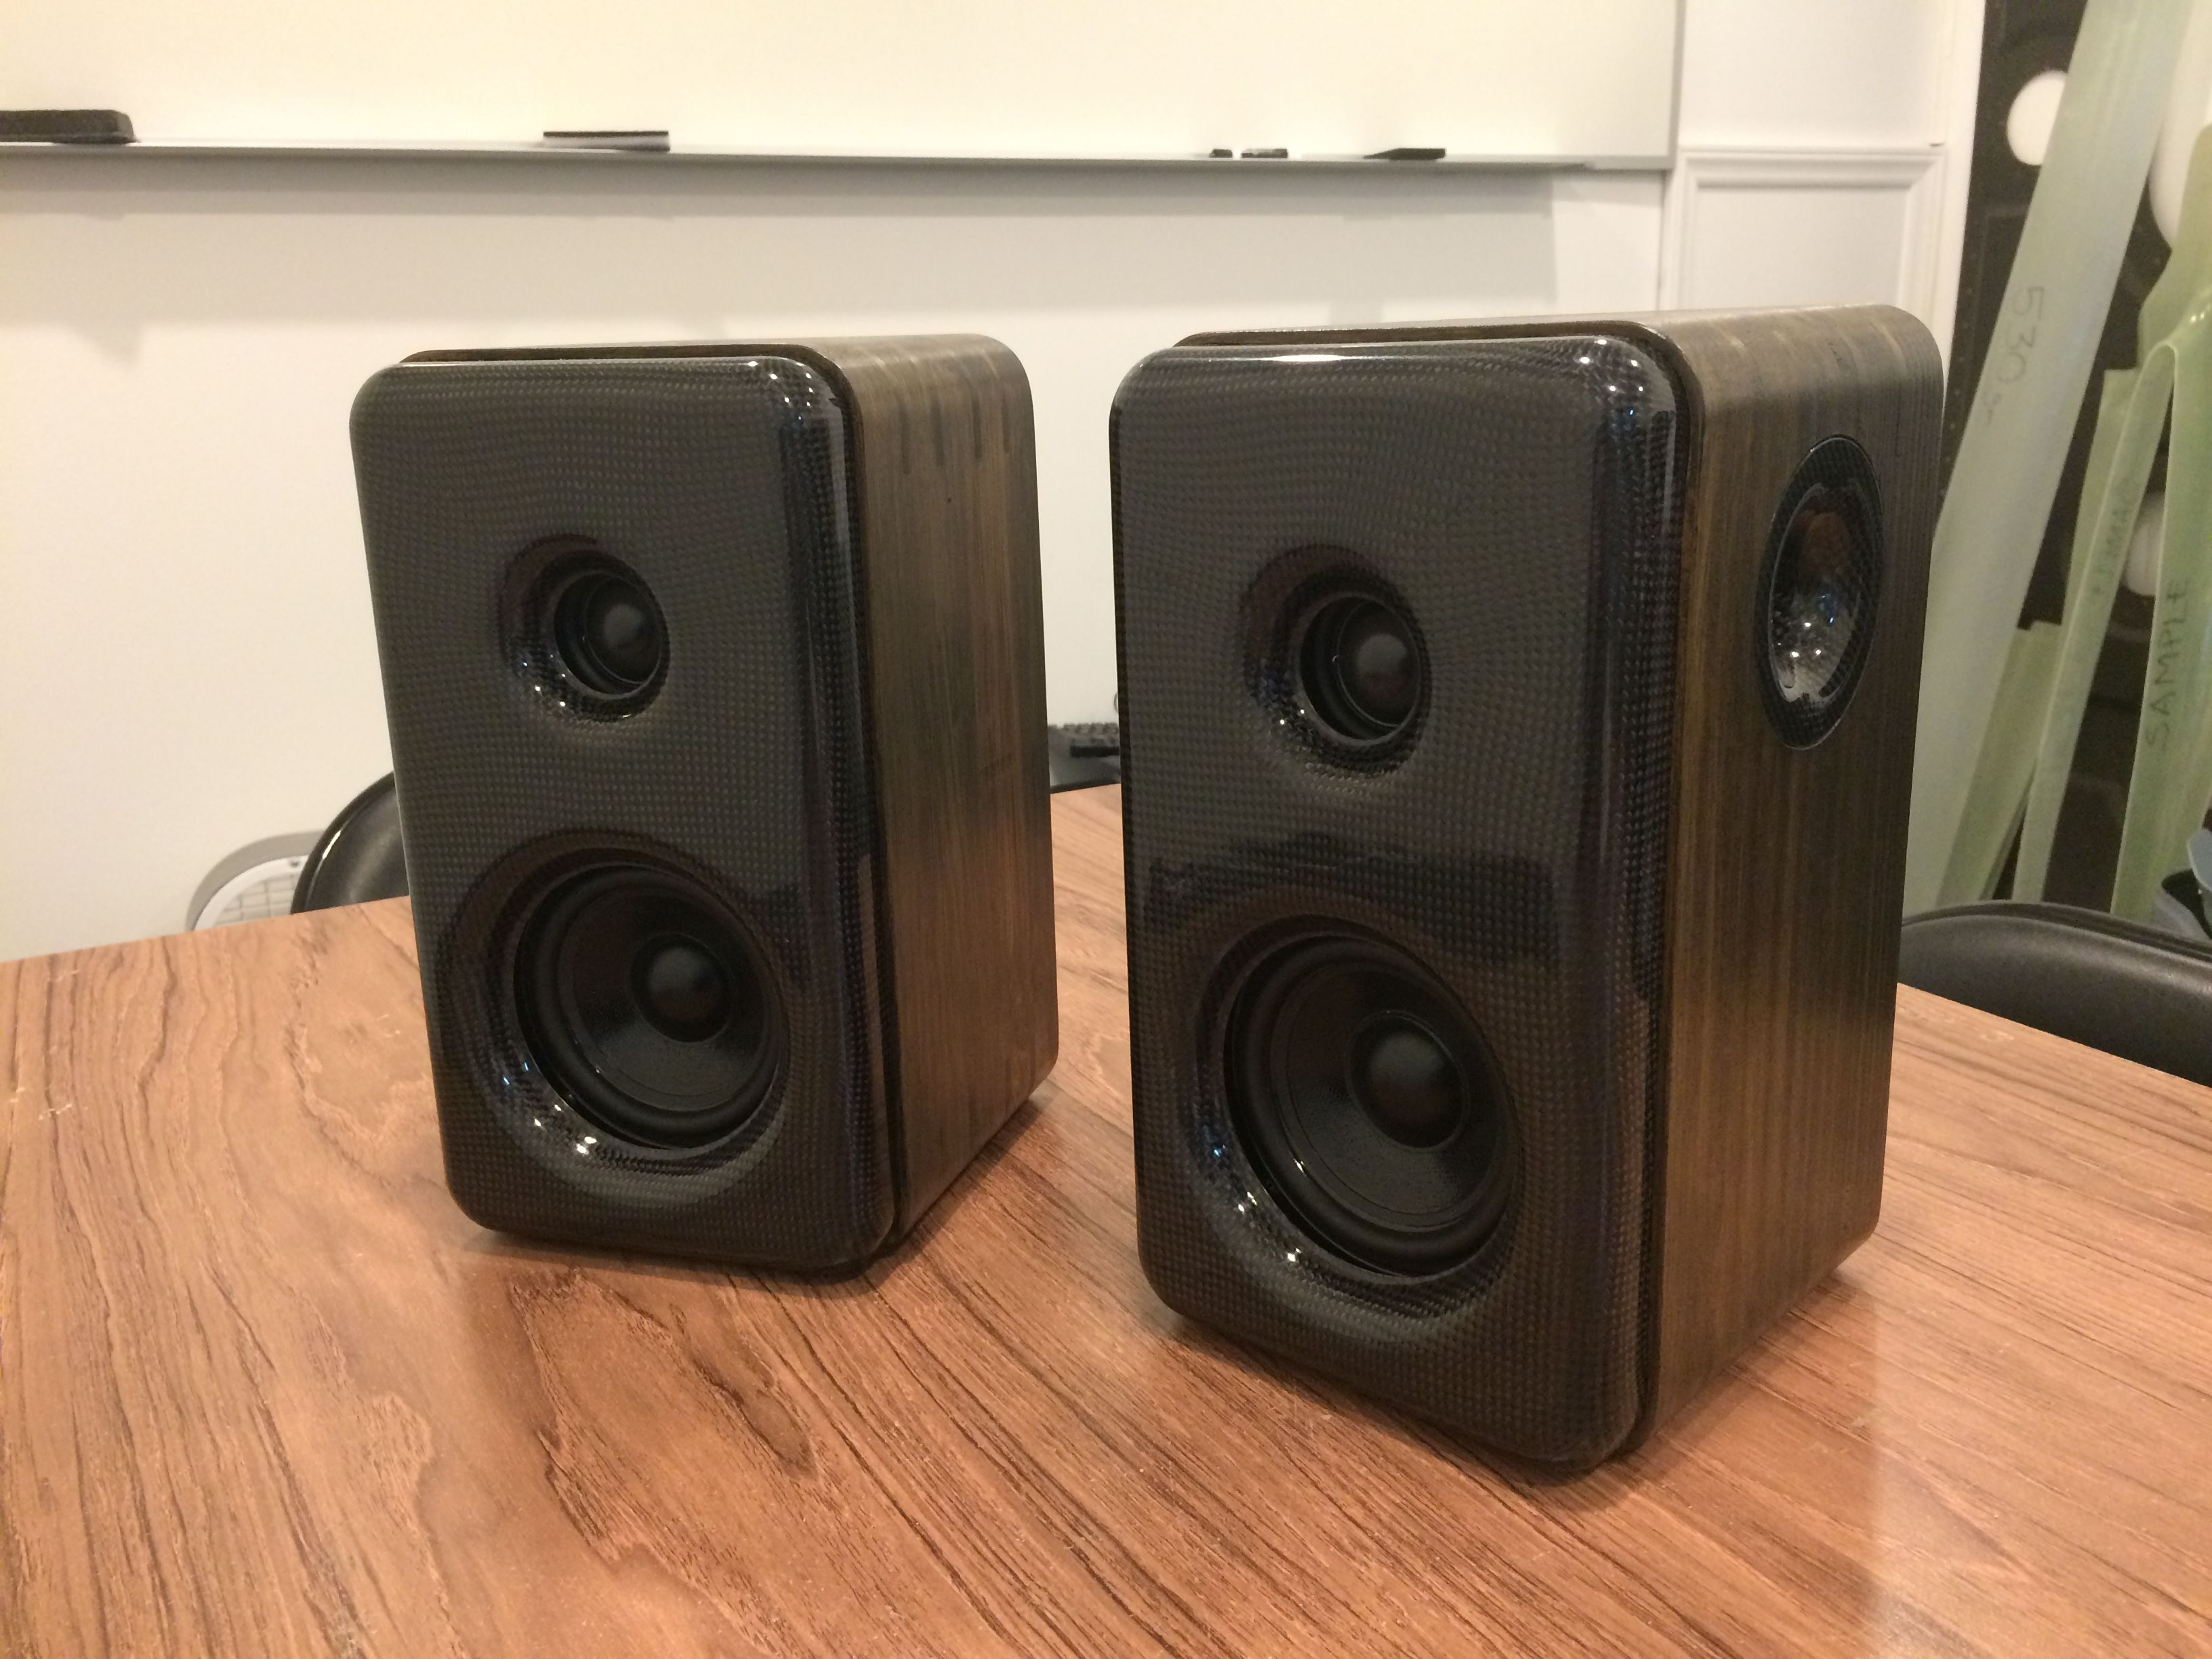 Designer Bob Project Category Bookshelf Speakers Project